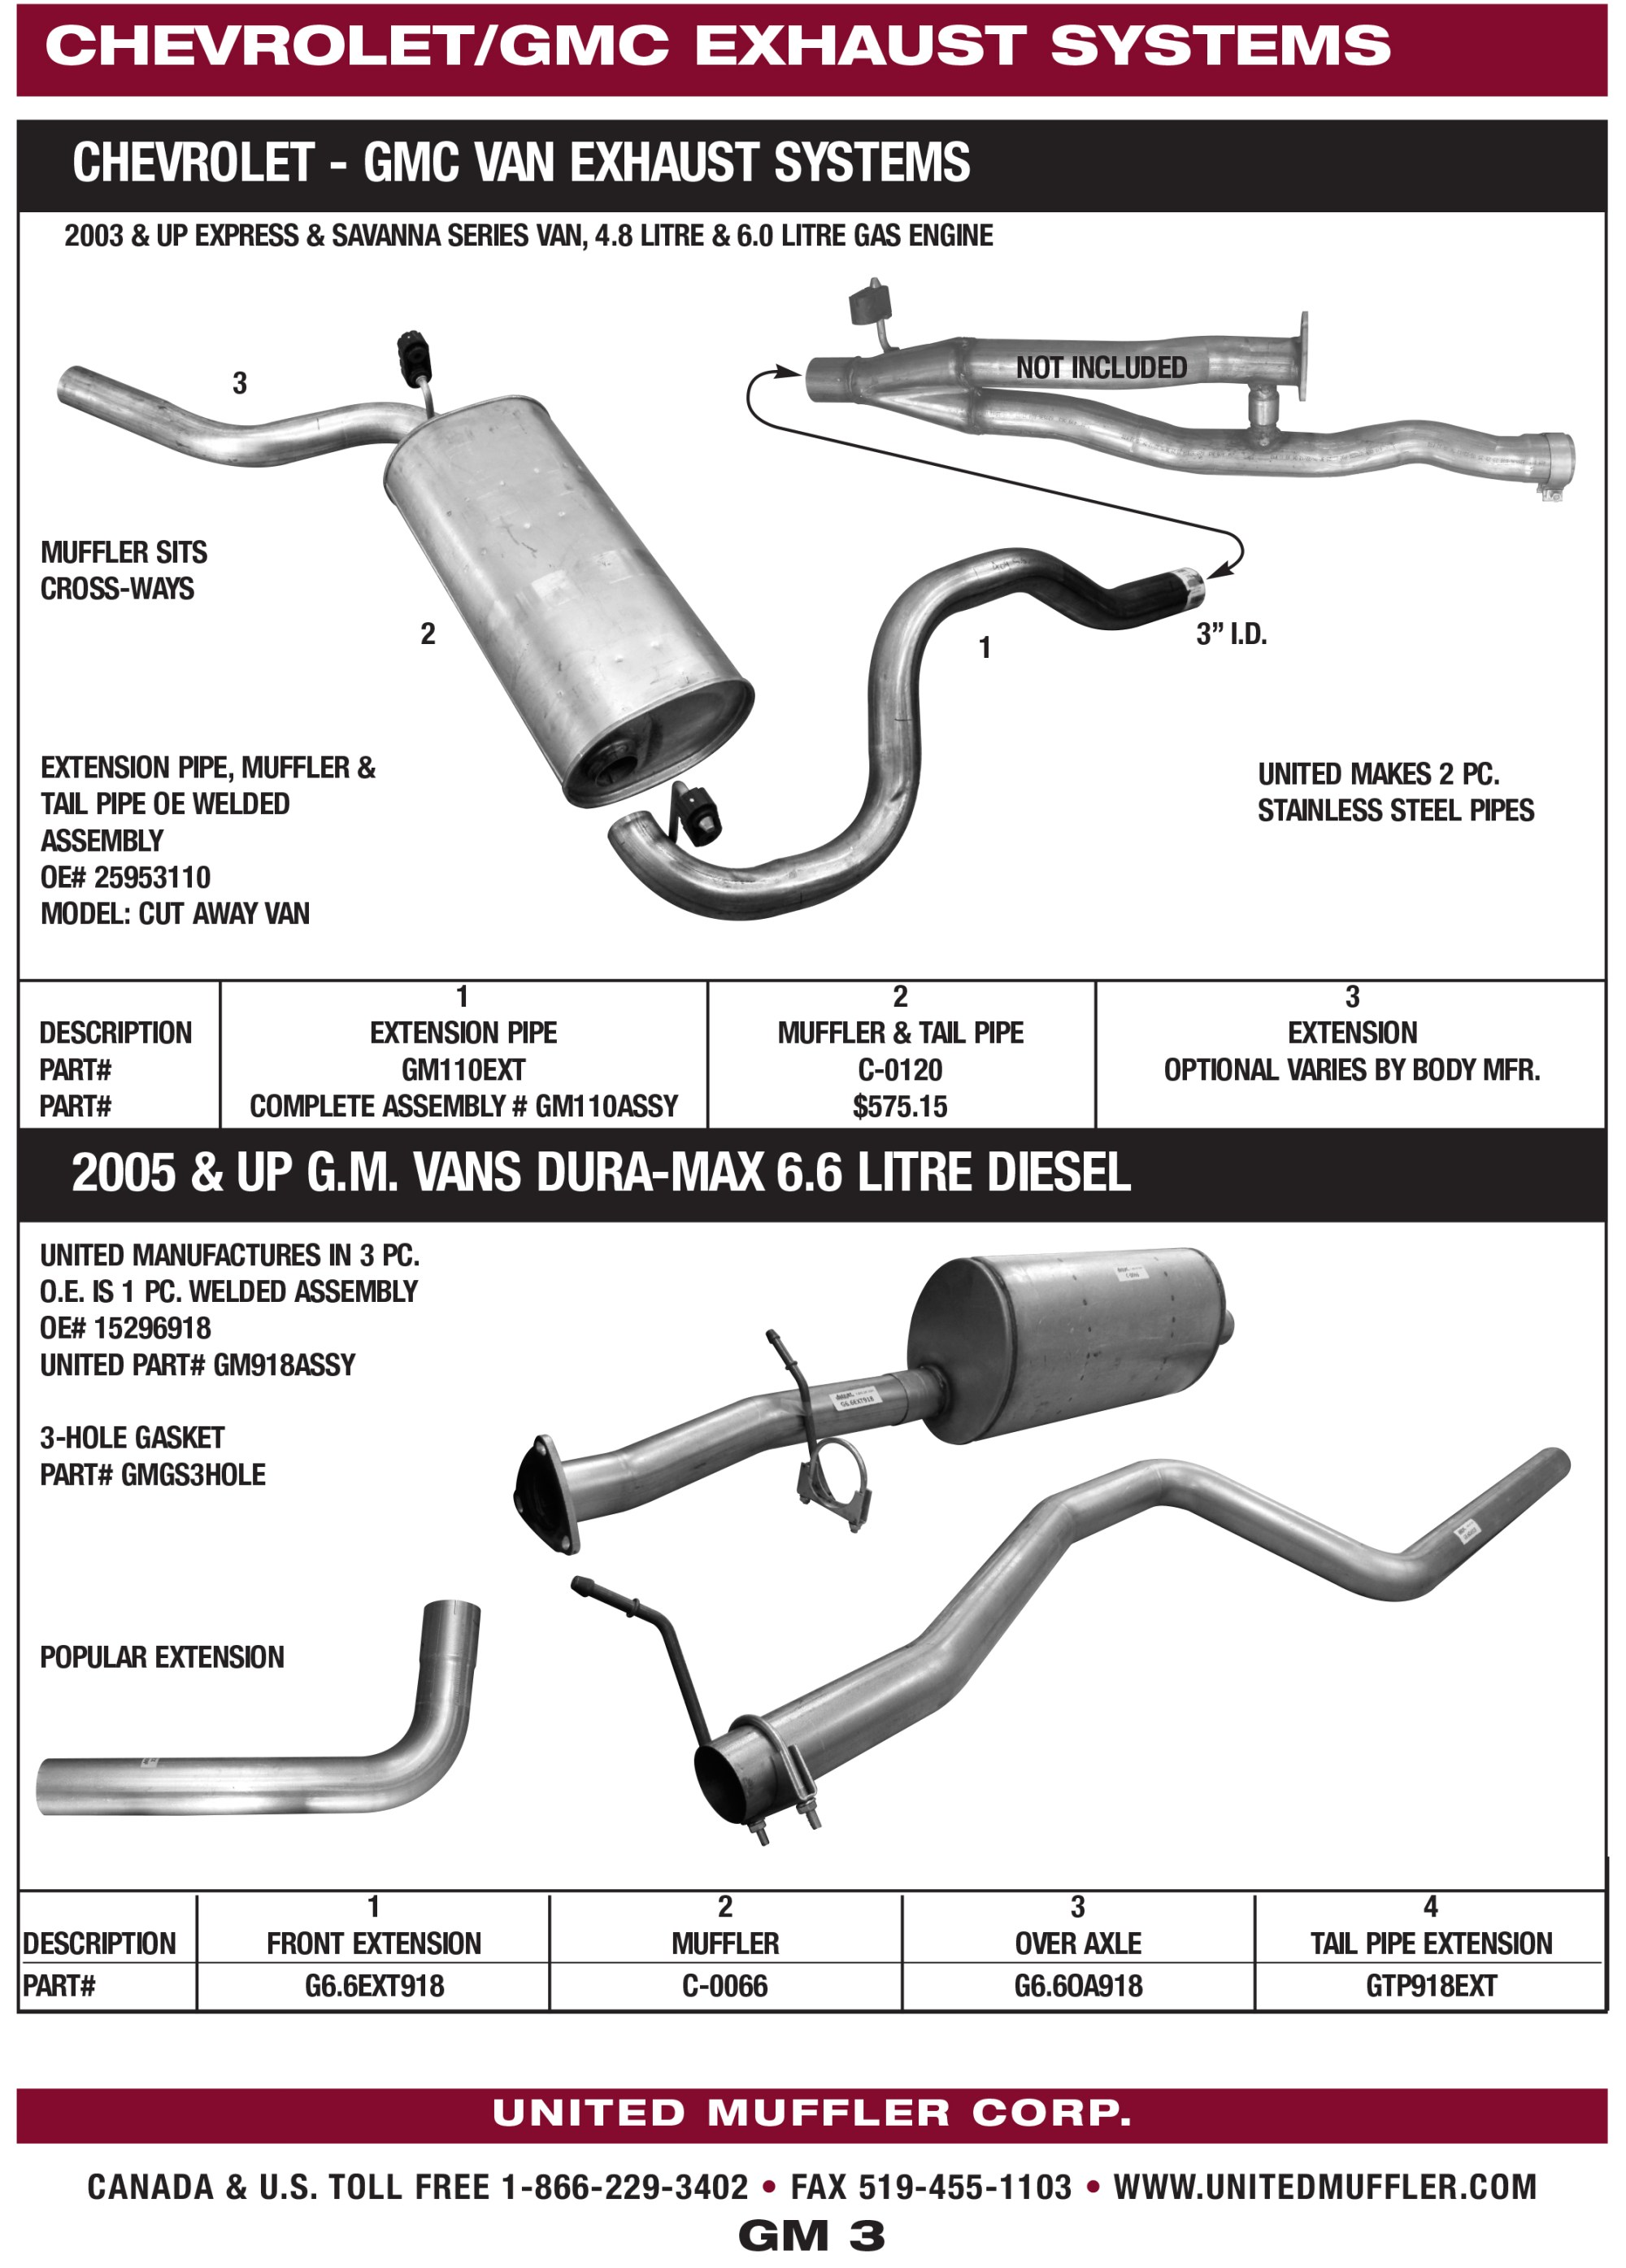 hight resolution of gm 3 chevrolet gmc van exhaust systems br 2005 up gm vans dura max 6 6 litre diesel